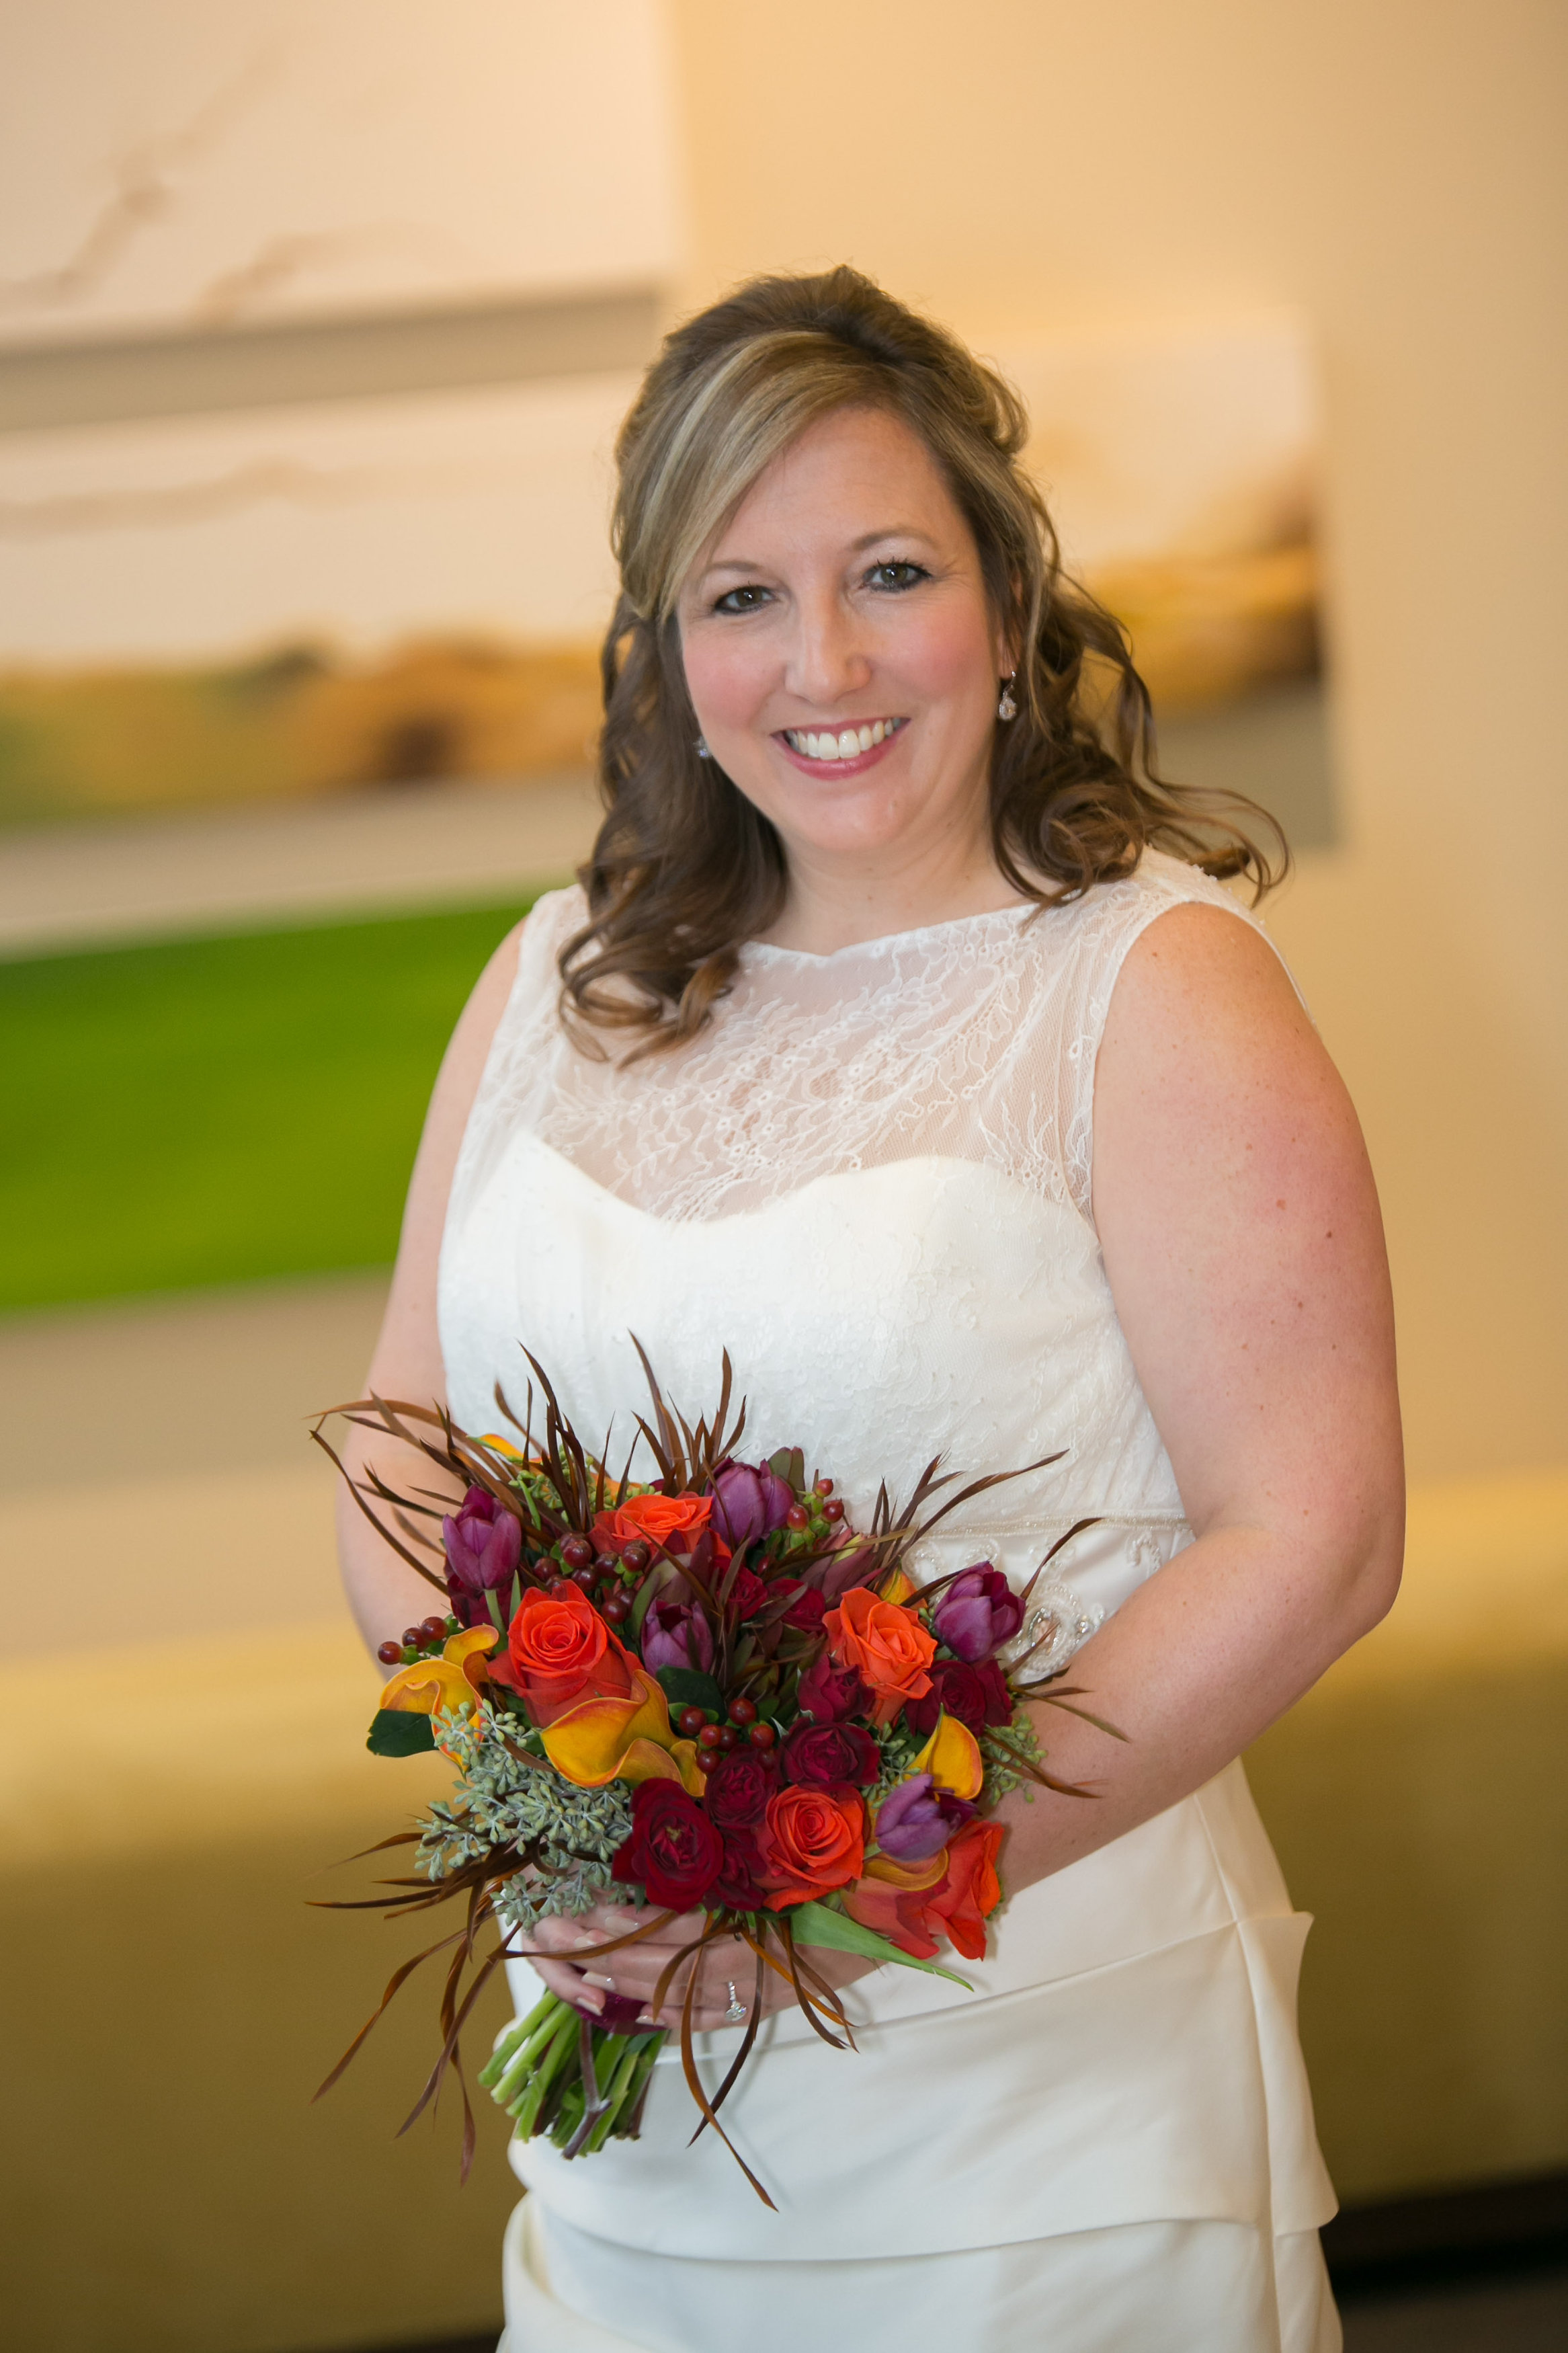 Amy chose a bright mix of fall colors for her and her daughter's bouquets.  The rich orange roses were accented with purple tupils, yellow calla lilies, deep red spray roses, burgundy hypericum berry.  The seeded eucalyptus,sunset leucadendron and feathers completed this impactful mix of flowers.